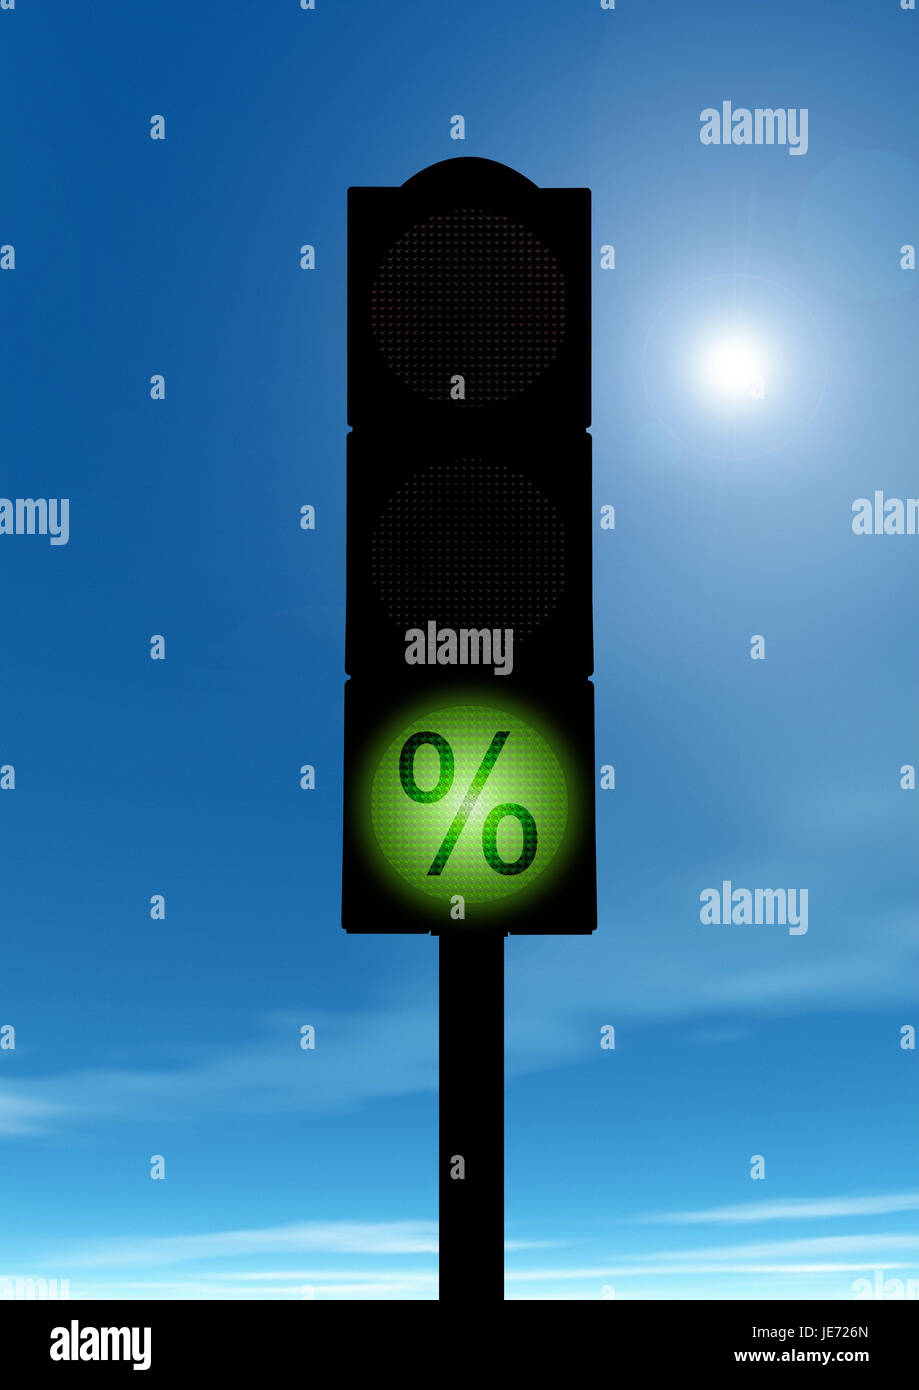 Green traffic light with percent sign, Stock Photo